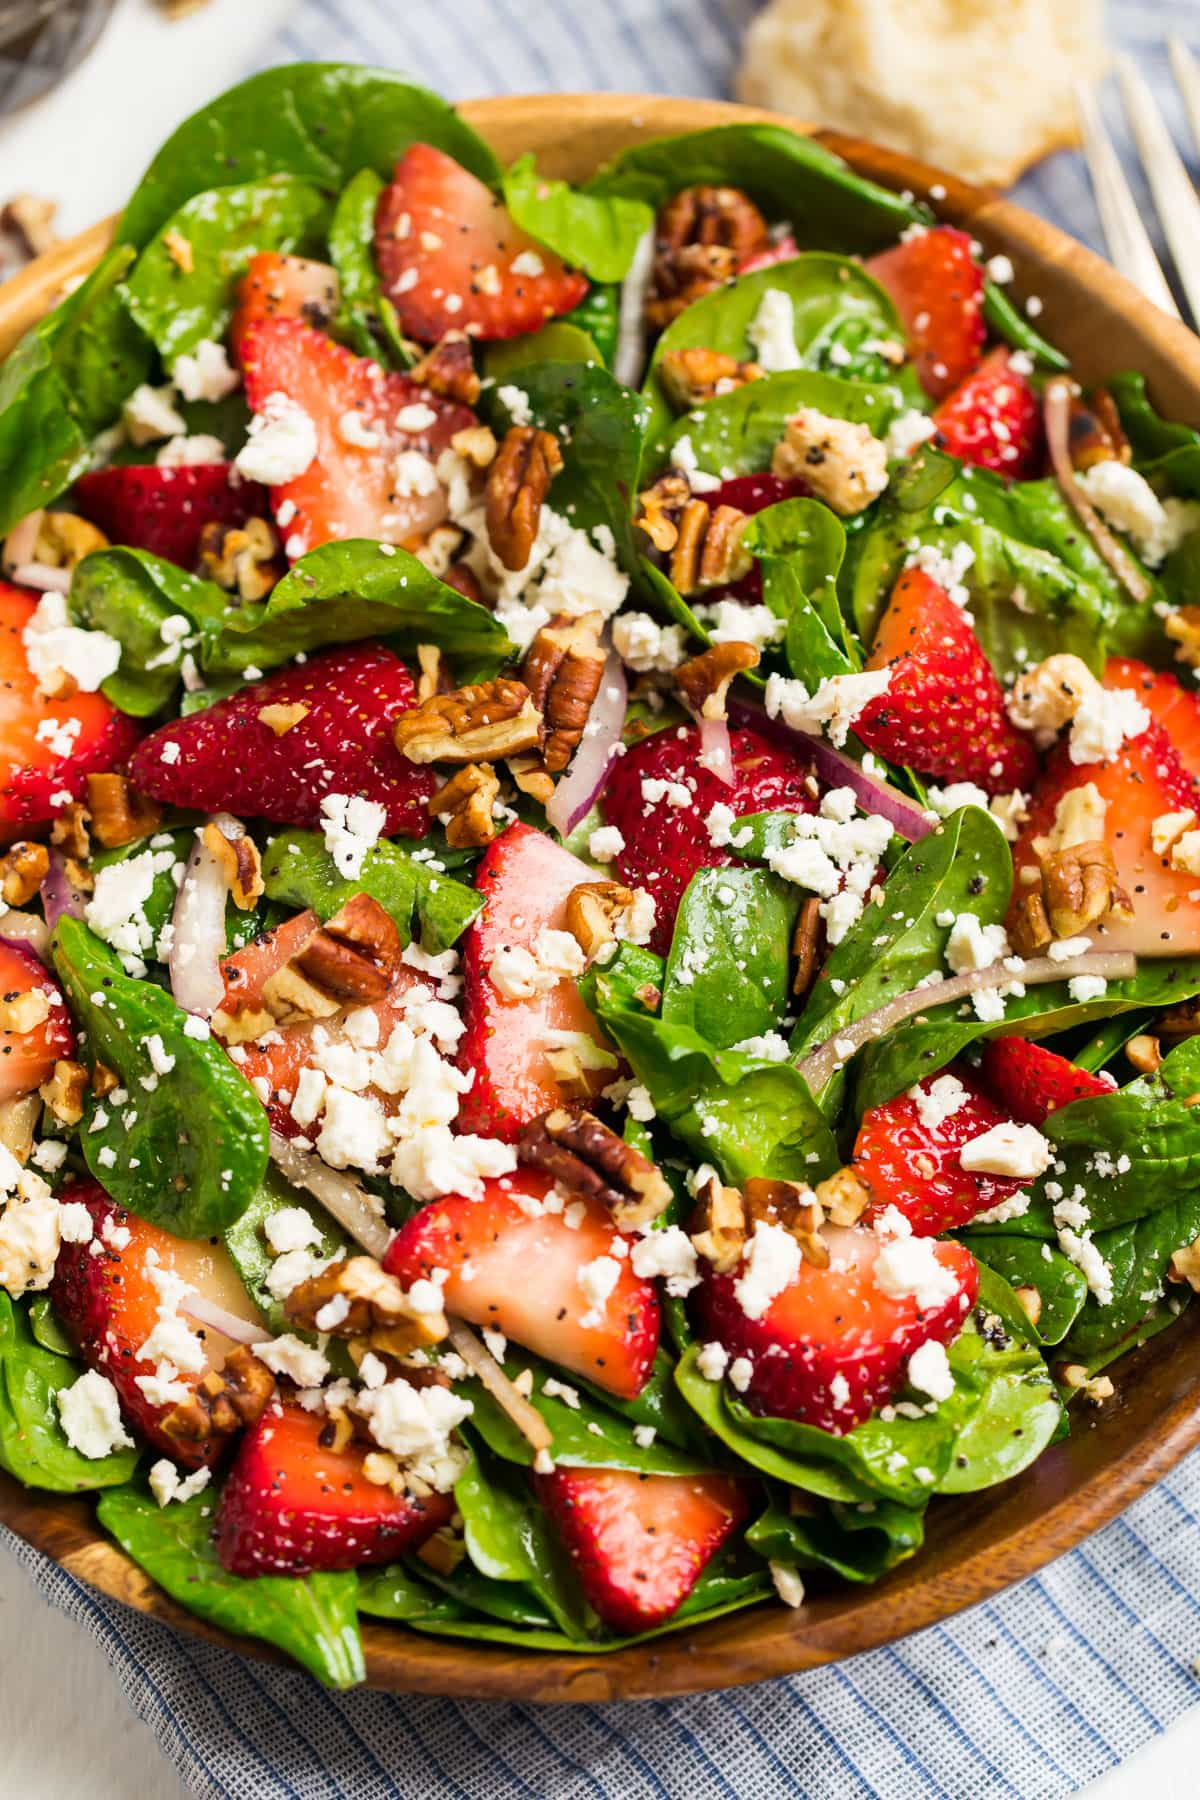 A bowl full of spinach salad with strawberries, feta, pecans, and poppy seeds